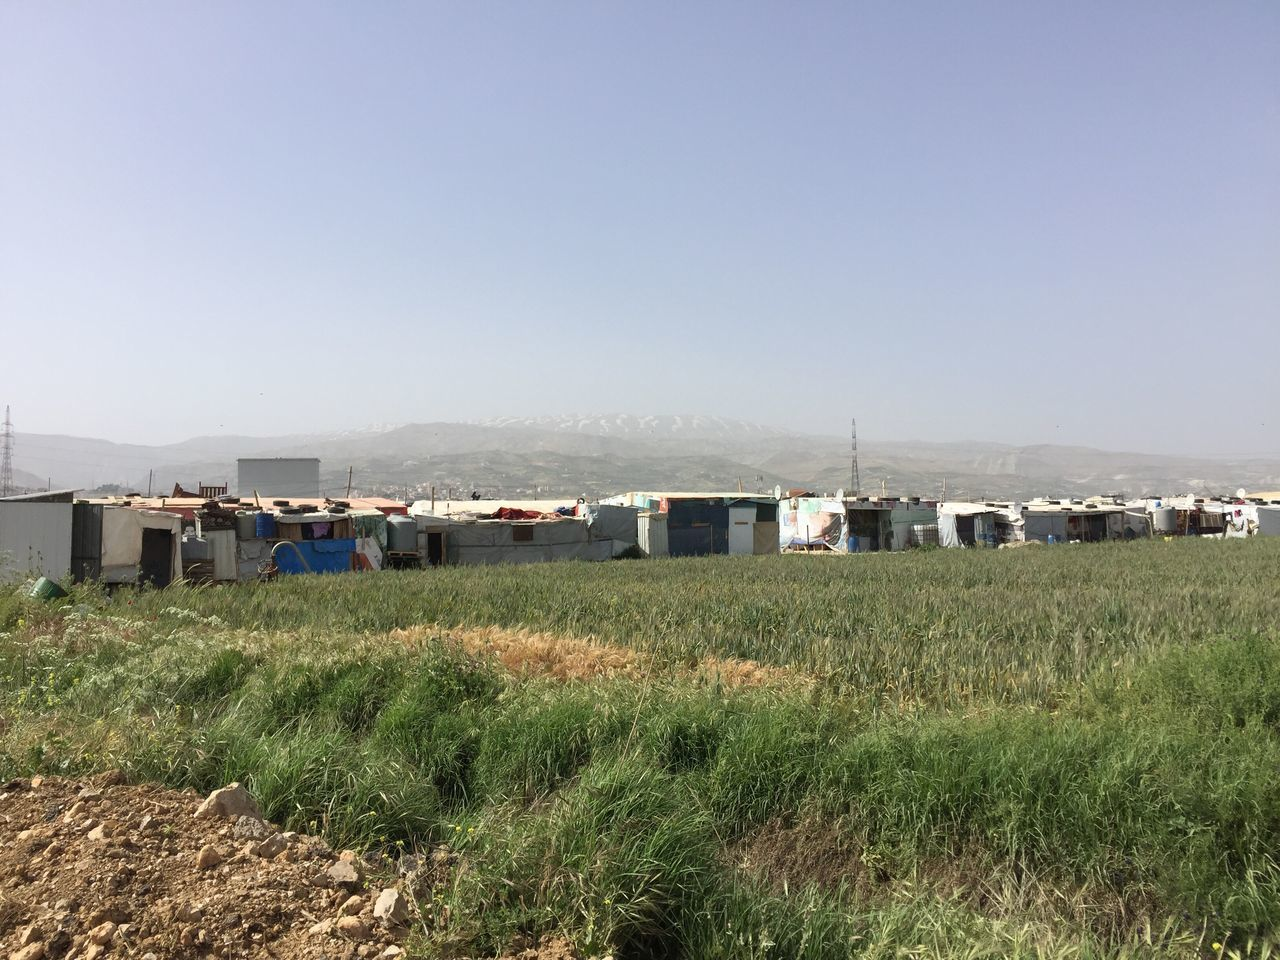 Refugee Camp Beqaavalley Lebanon